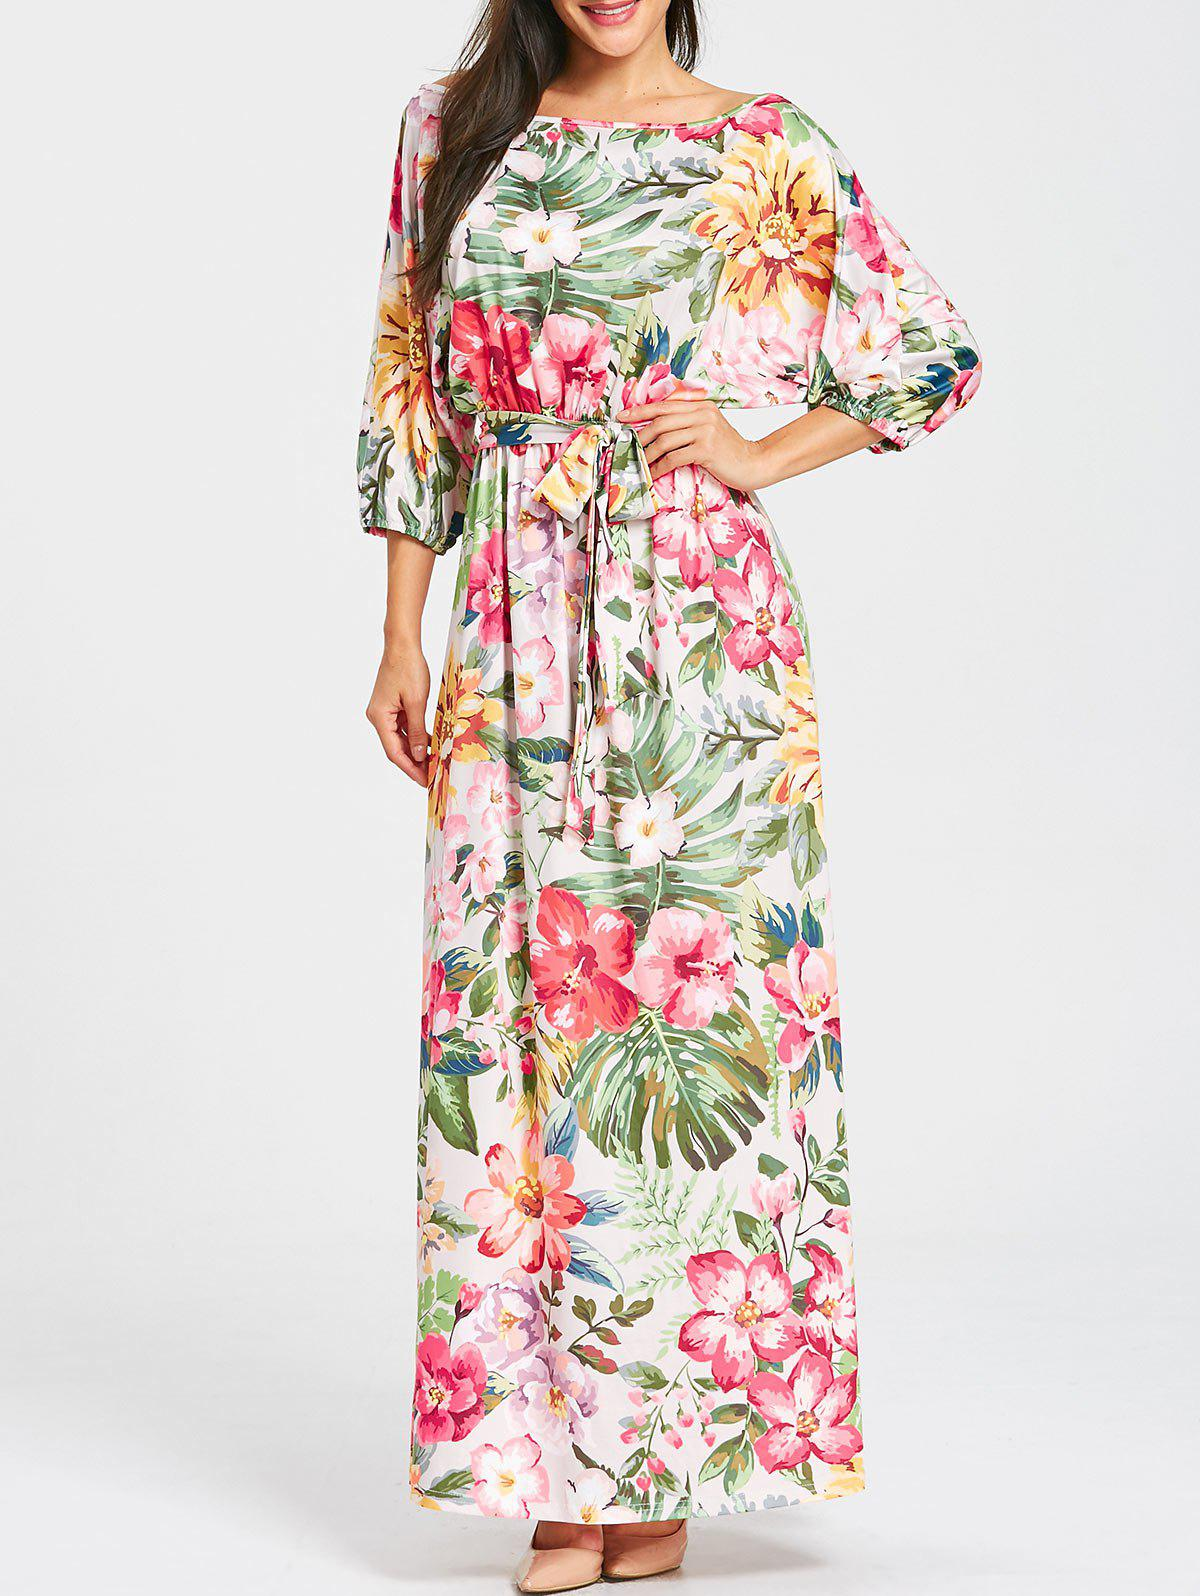 Belted Floral Print Batwing Sleeve Maxi Dress - YELLOW / GREEN L